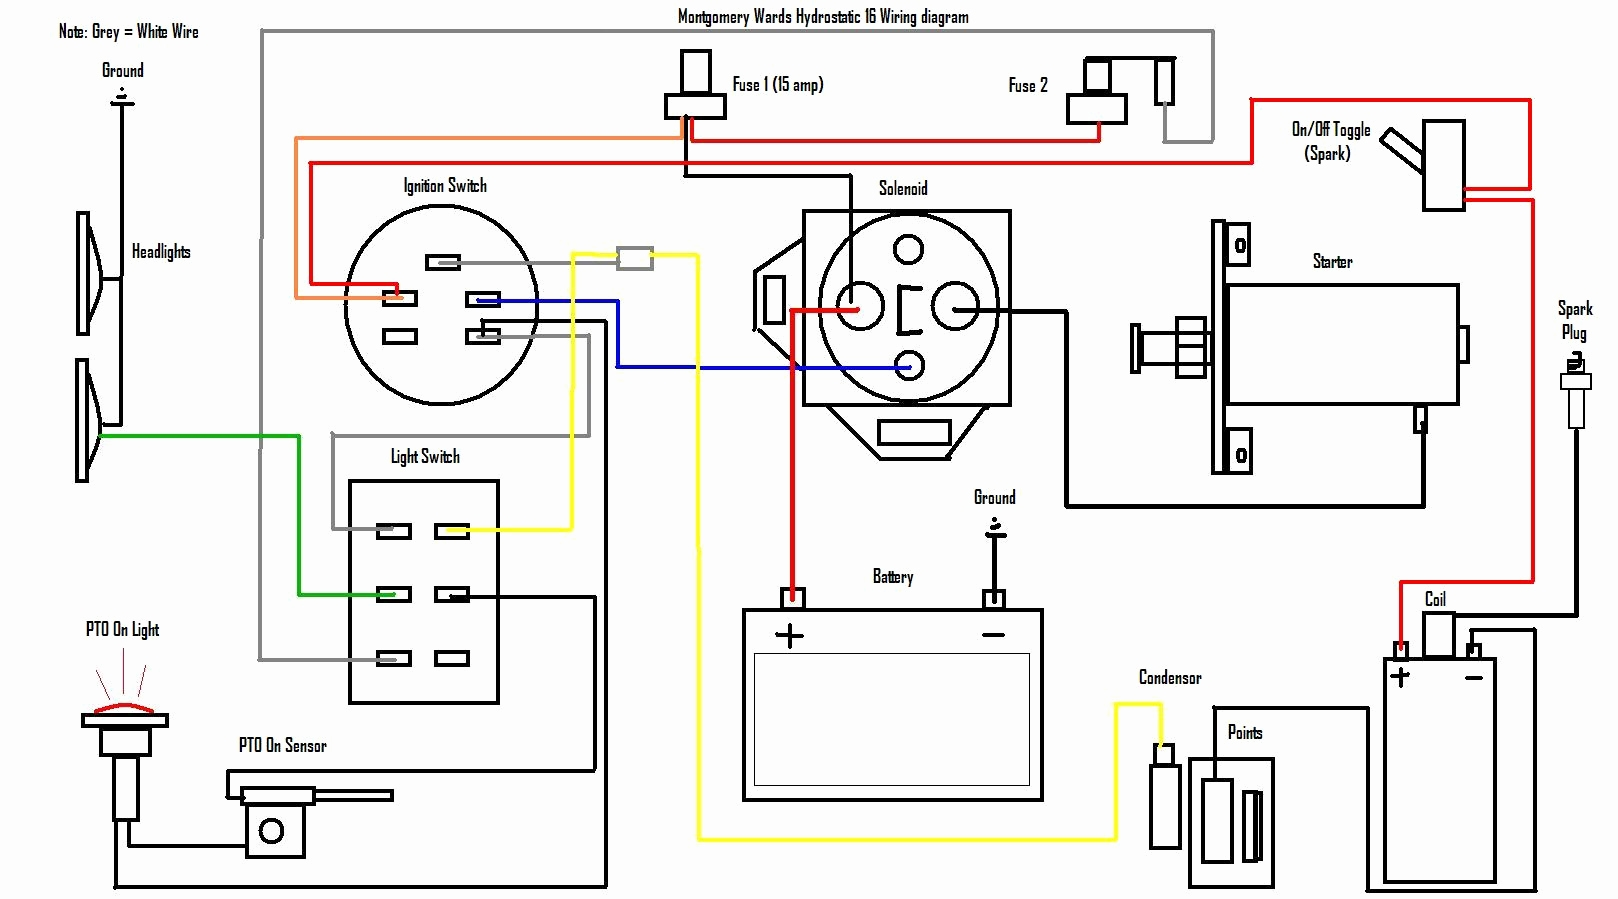 DIAGRAM] 110 John Deere Wiring Diagram FULL Version HD ... on john deere lawn mower engine diagram, john deere rx95 wiring-diagram, john deere 112 electric lift wiring diagram, john deere lawn tractor generator, john deere solenoid wiring diagram, john deere 24 volt starter wiring diagram, john deere lawn tractor coil, john deere l125 wiring-diagram, john deere 325 wiring-diagram, john deere lawn tractor lubrication, john deere lt166 wiring-diagram, john deere lawn tractor ignition switch, john deere 318 ignition wiring, john deere 317 ignition diagram, john deere planter wiring diagram, john deere lx255 wiring-diagram, john deere lawn tractor brake pads, john deere lawn mower carburetor diagram, john deere lawn tractor ignition system, john deere 110 wiring diagram,